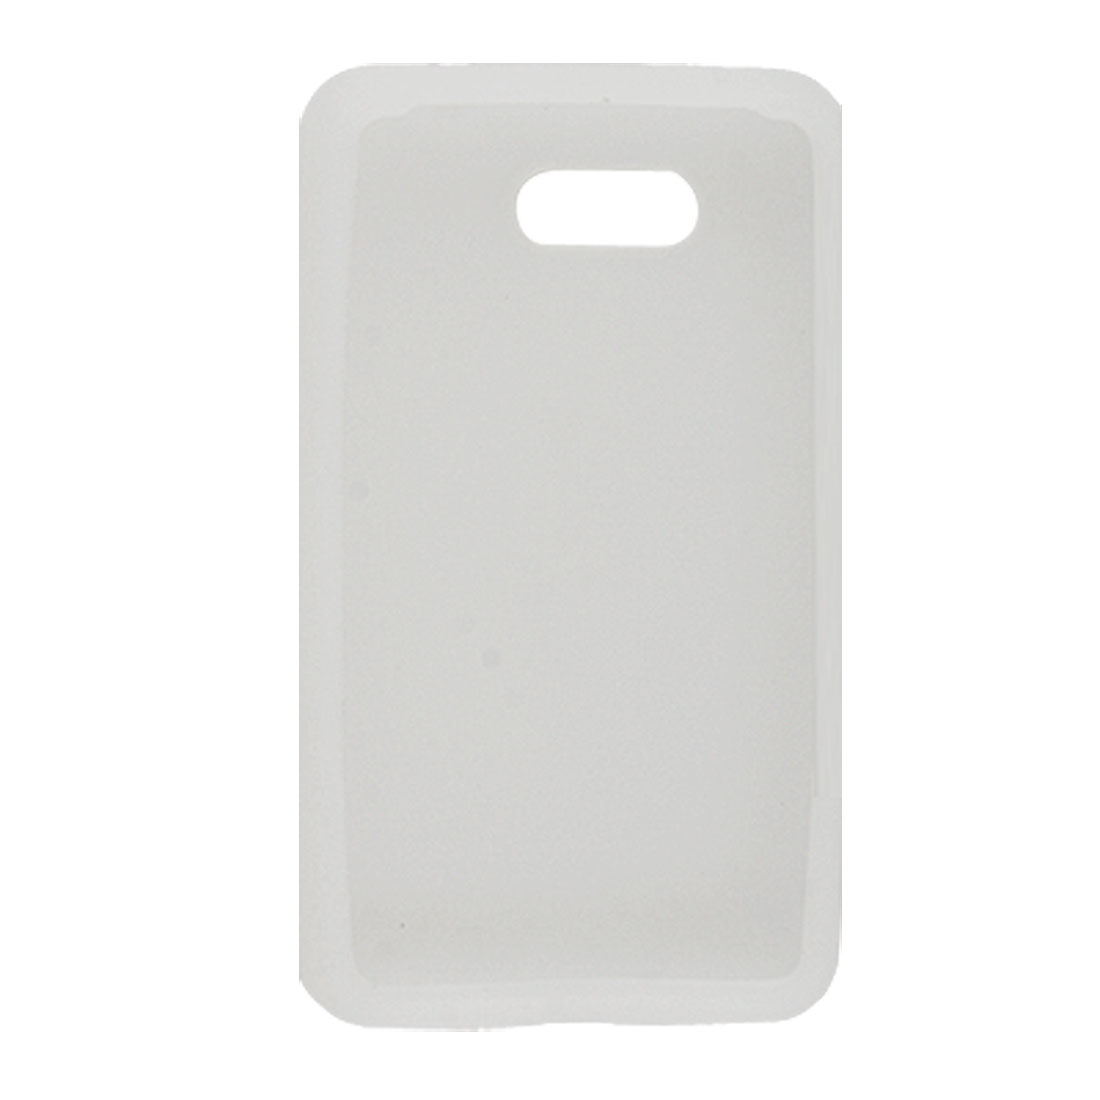 White Silicone Skin Soft Case Protector White for HTC HD Mini